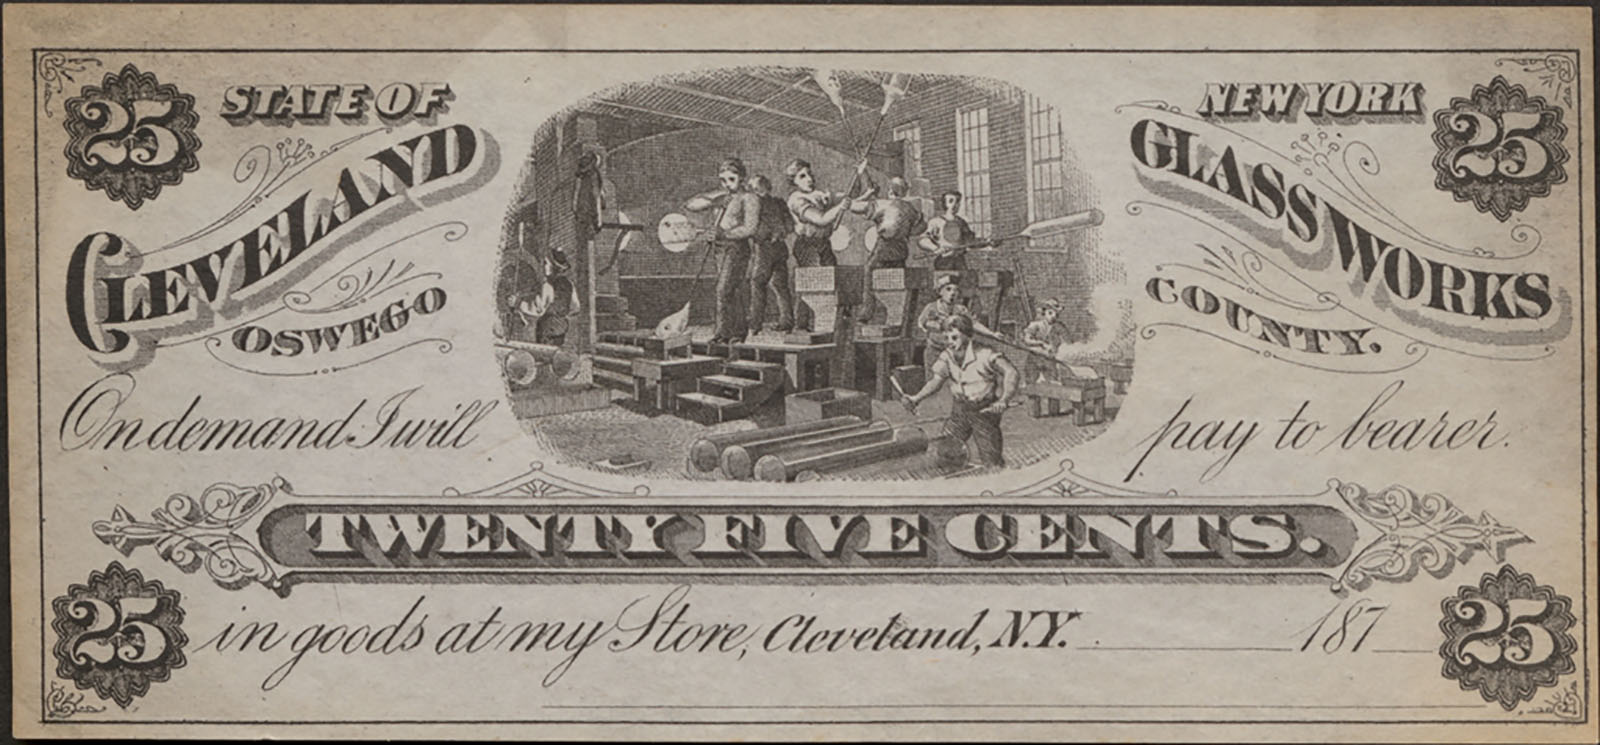 Cleveland Glass Works twenty-five cent scrip, 1870-1879. CMGL 167608